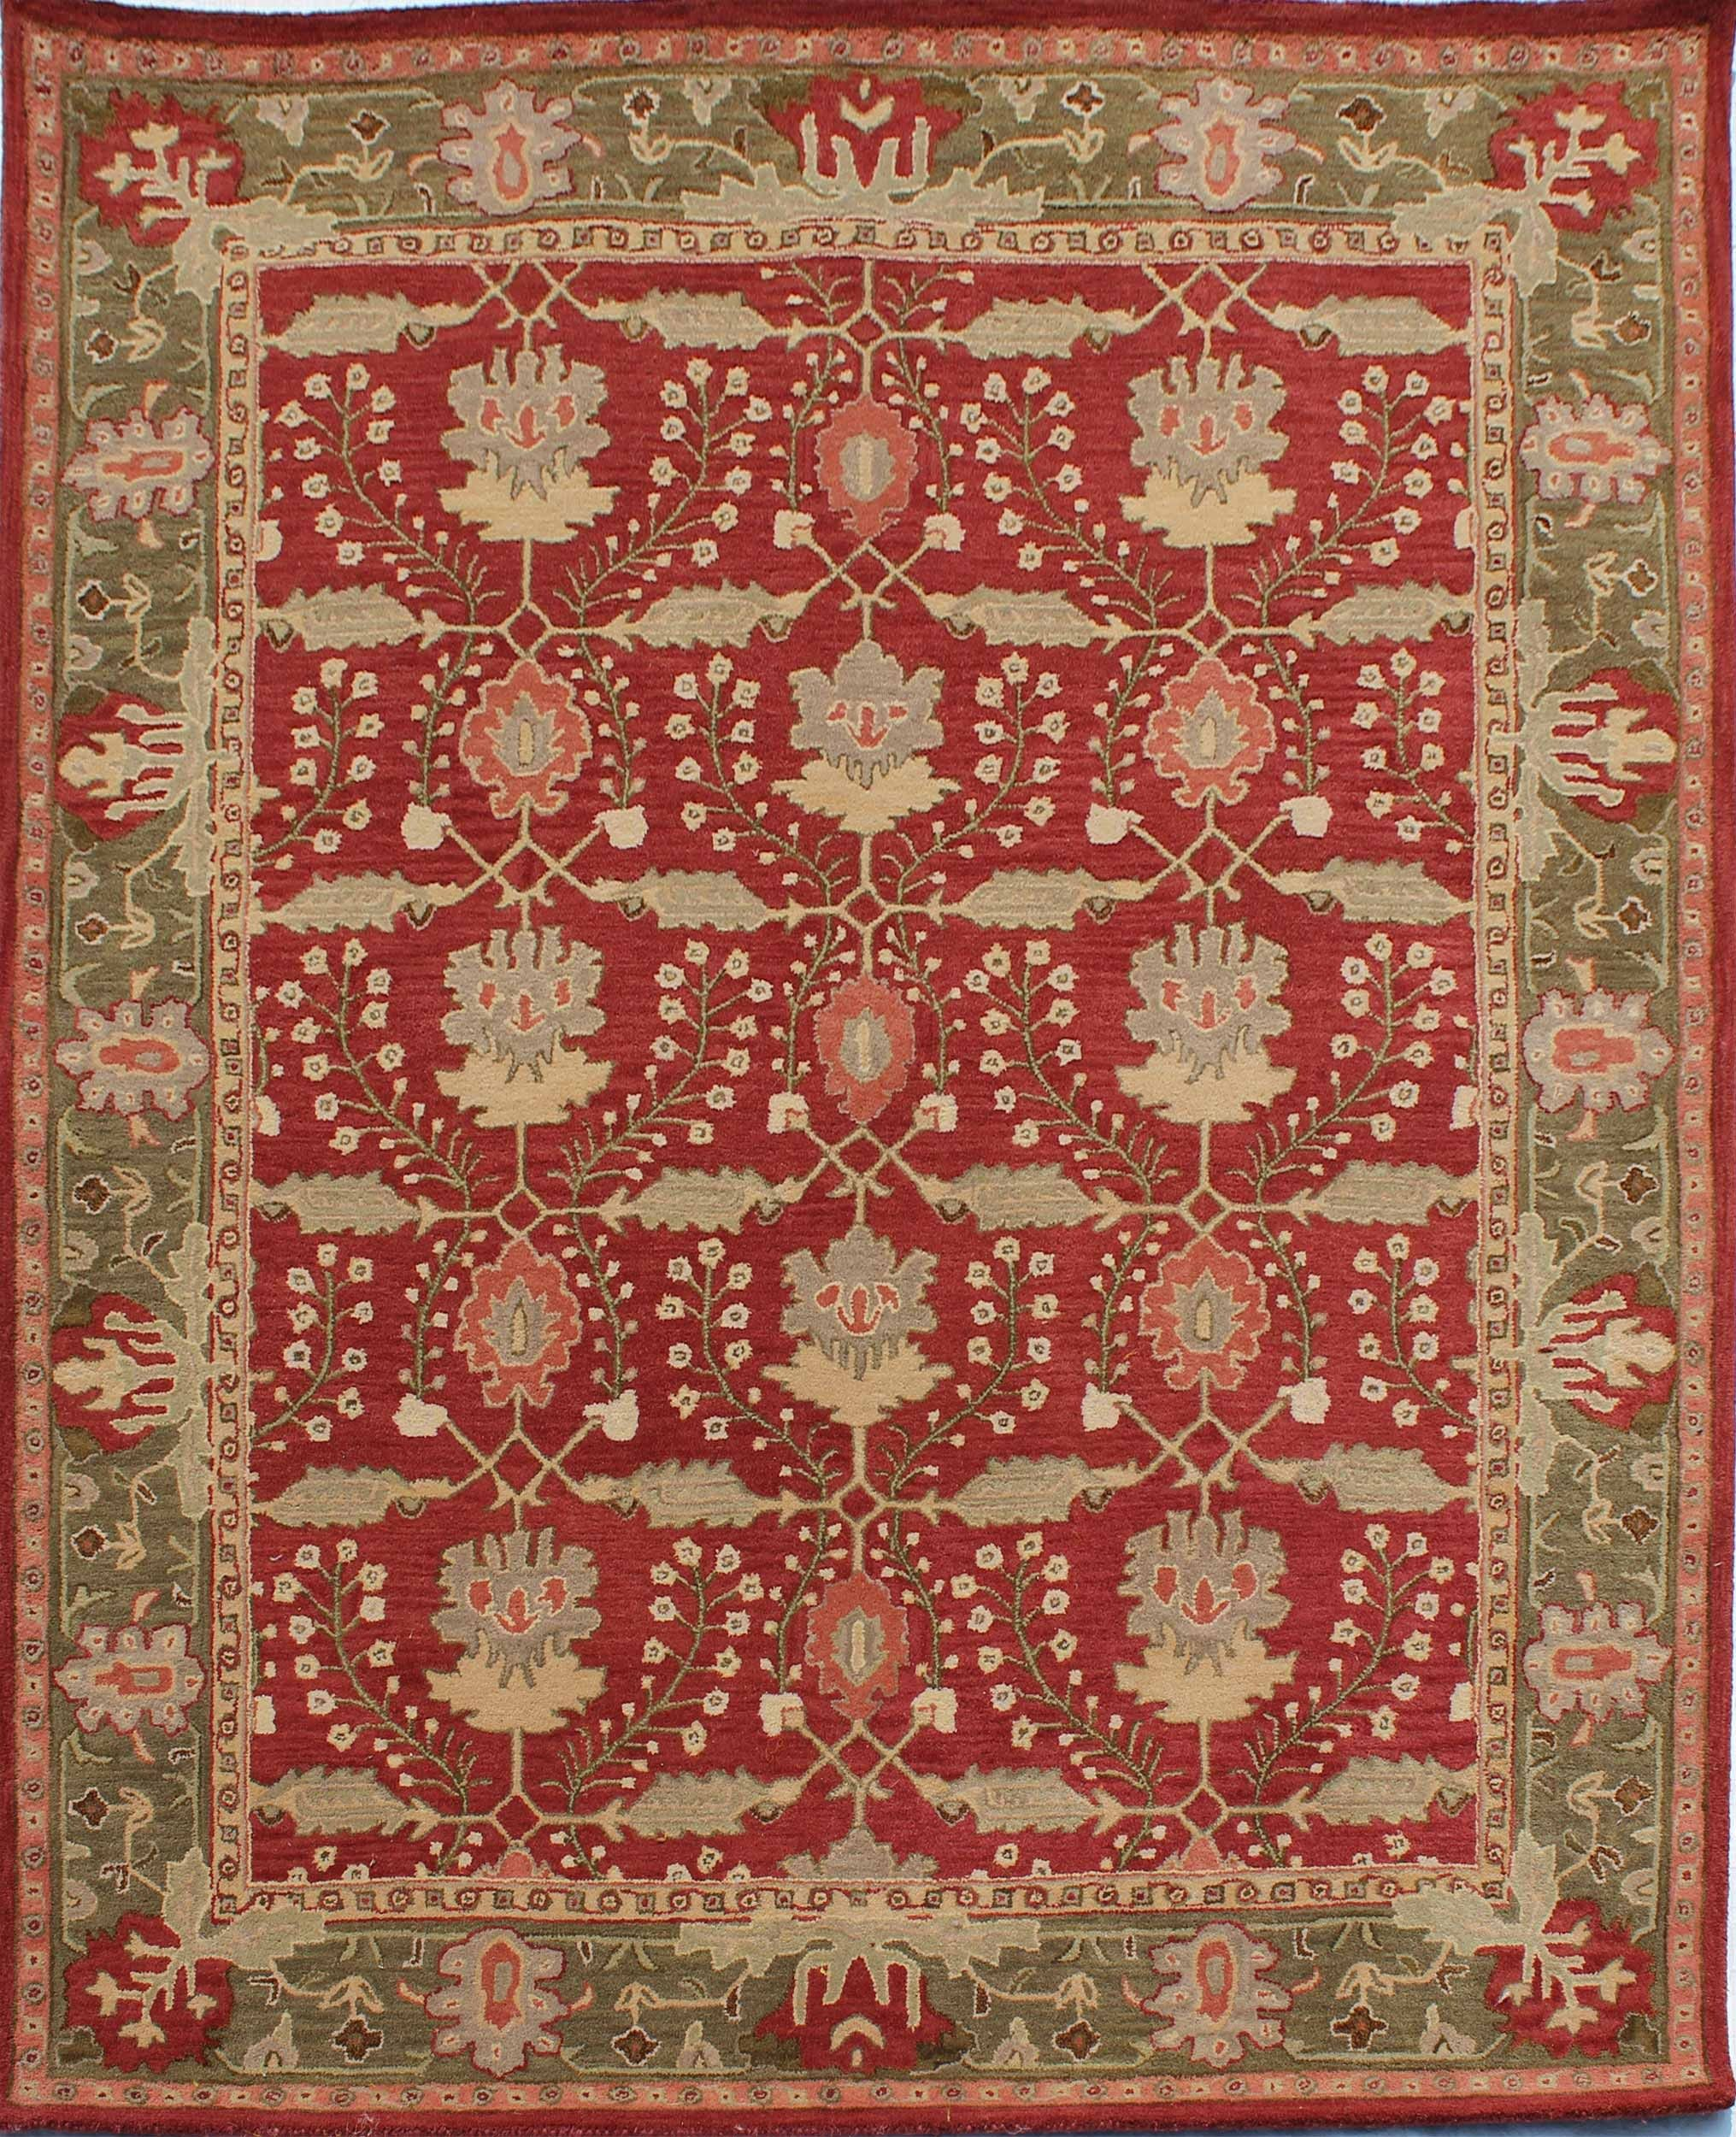 Rugsville Frankilin Arts Crafts Rug 11730 Buy Area Rugs Craftsman Rugs Arts Crafts Style